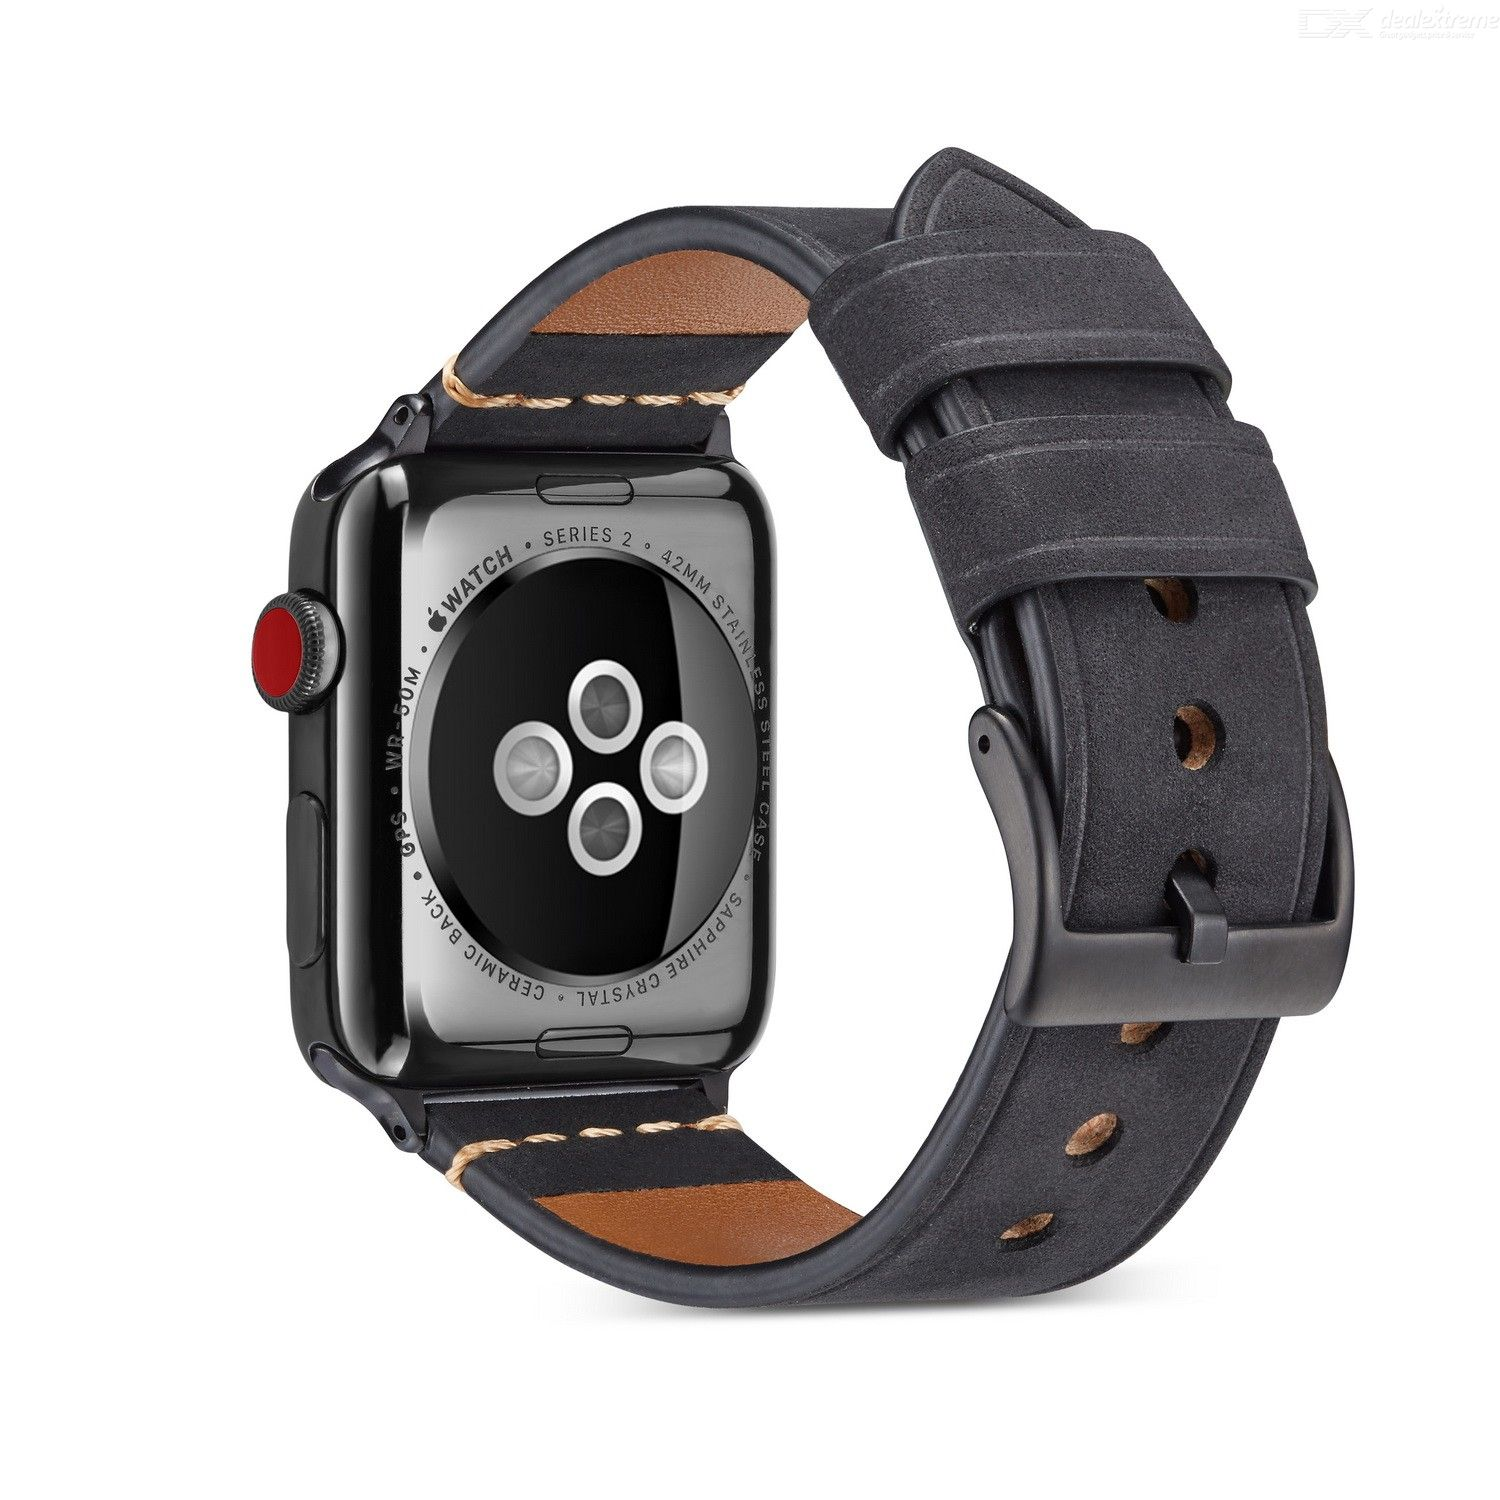 Premium Frosted Leather Strap Replacement Watch Band for Apple Watch iWatch 1 / 2 / 3 / 4 / 5